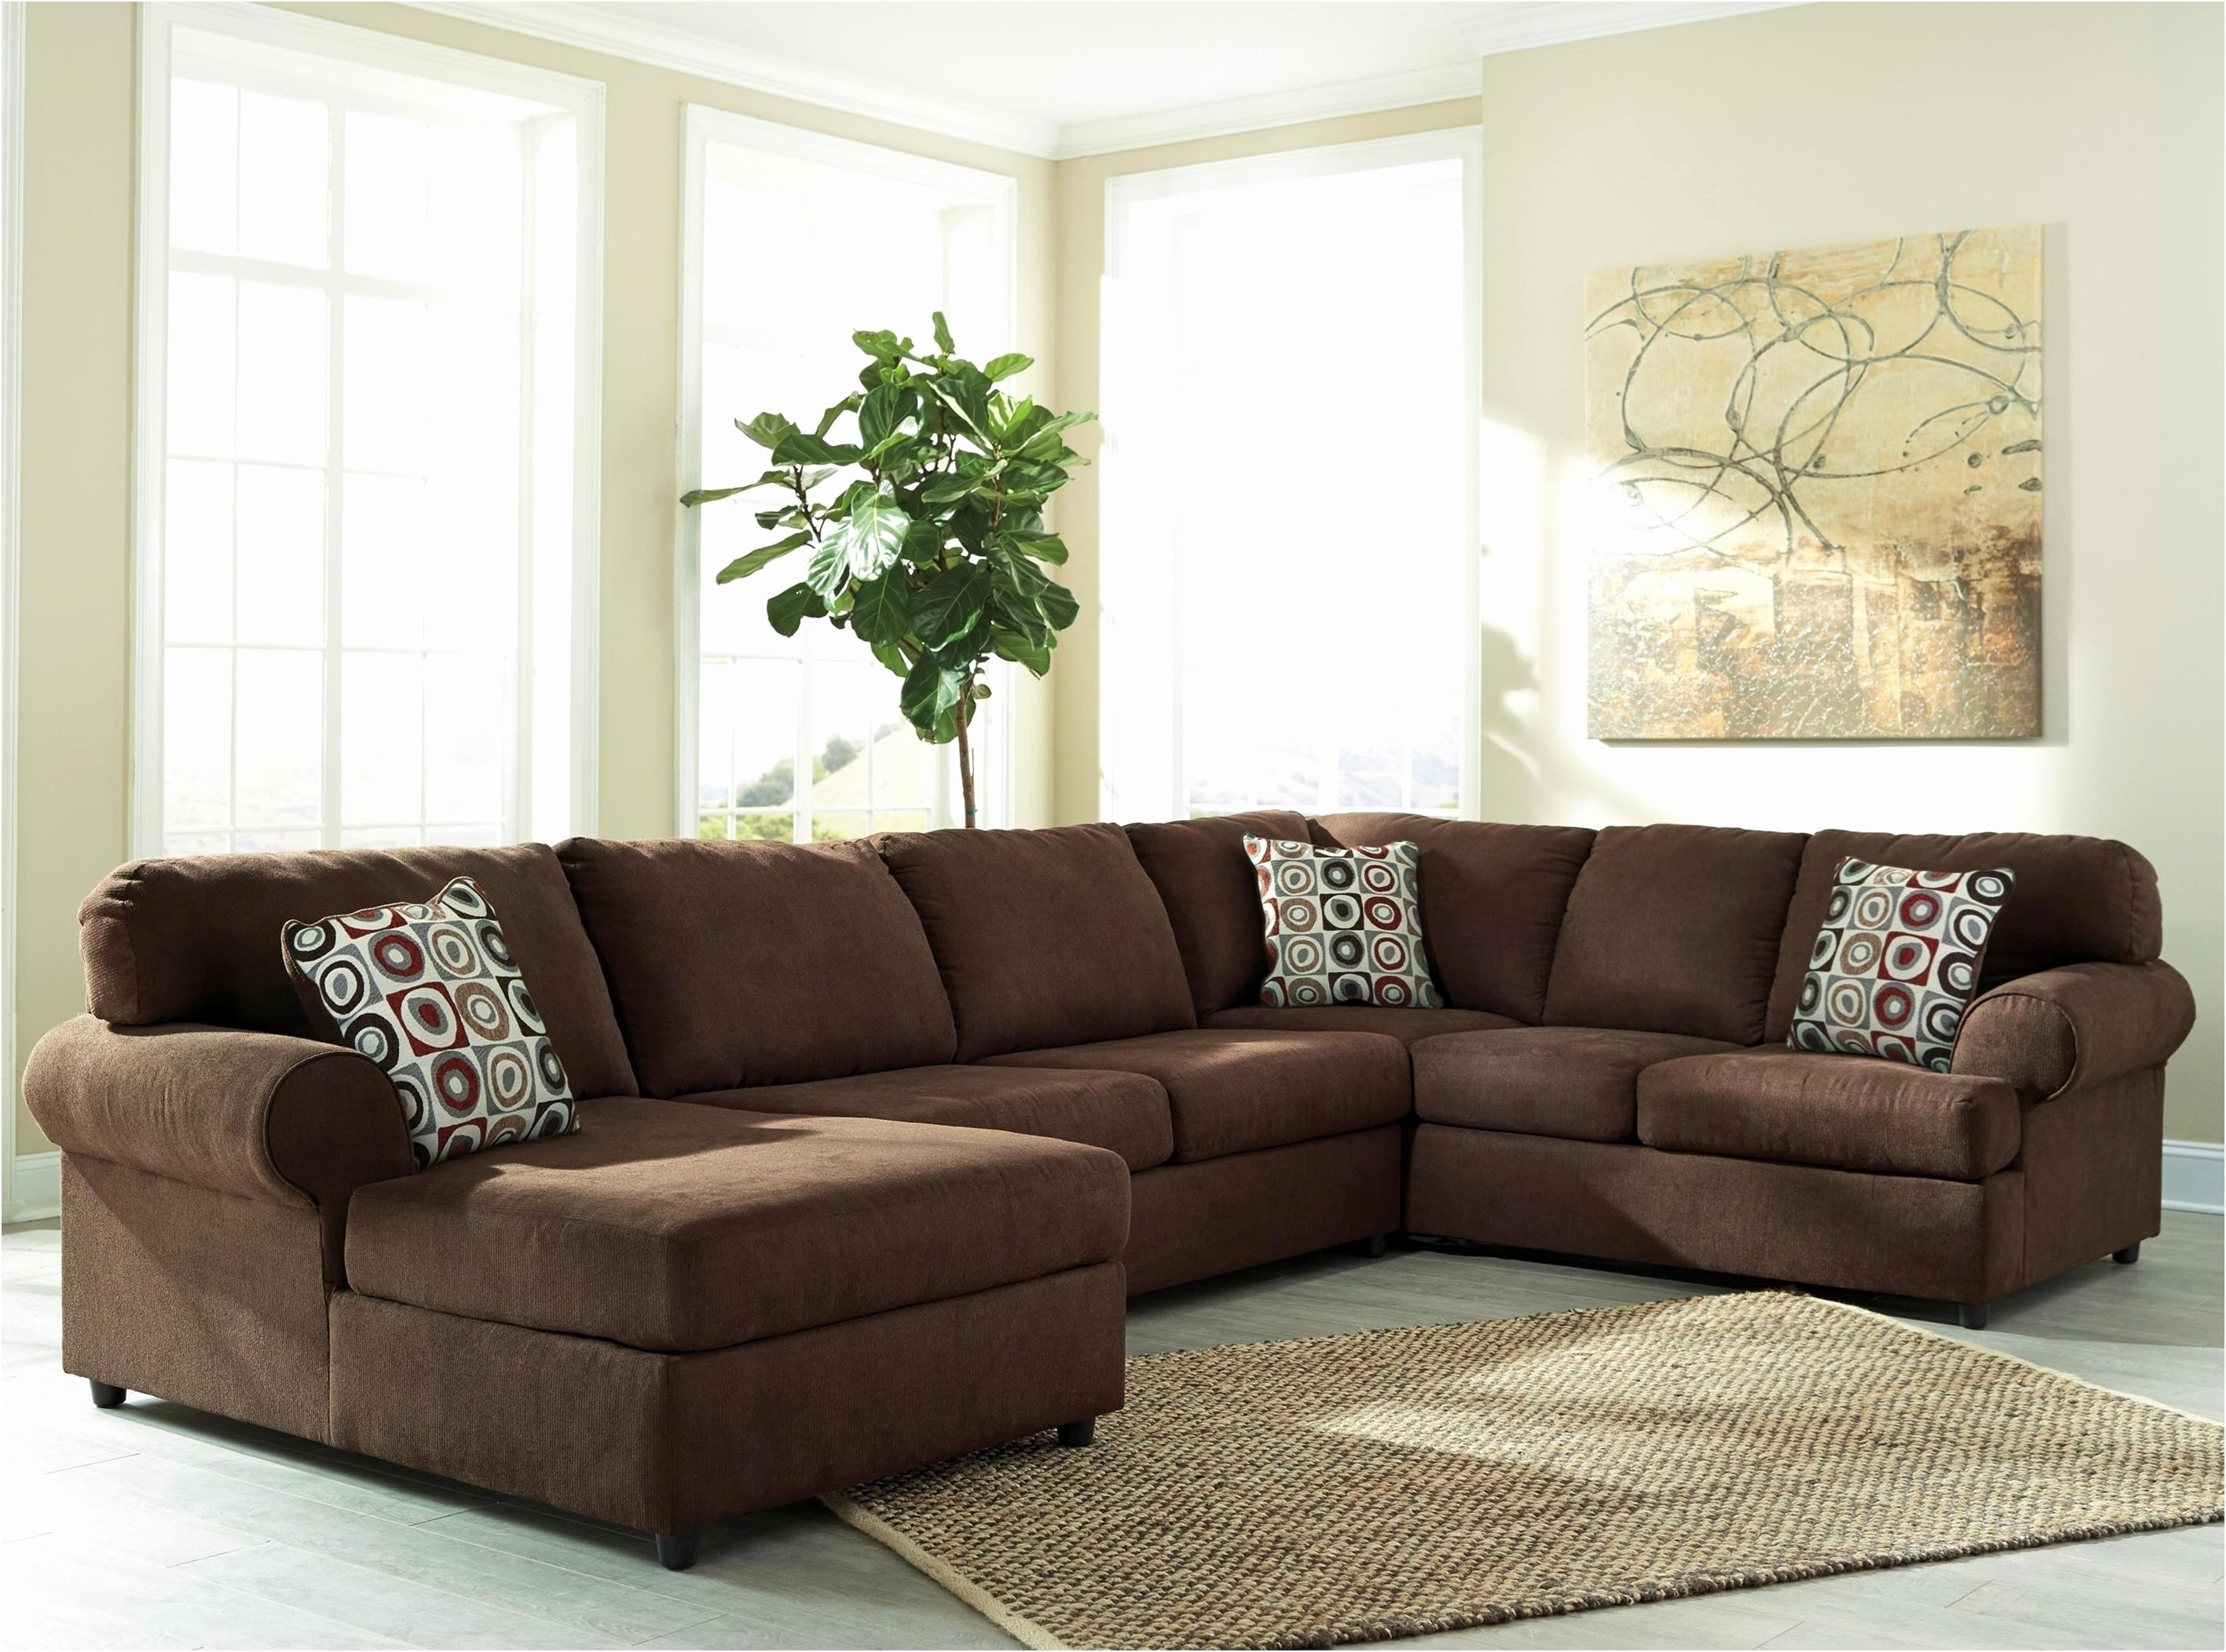 Havertys Furniture Sectionals Inspiration Probably Super Real Throughout Arrowmask 2 Piece Sectionals With Sleeper & Right Facing Chaise (Image 9 of 25)